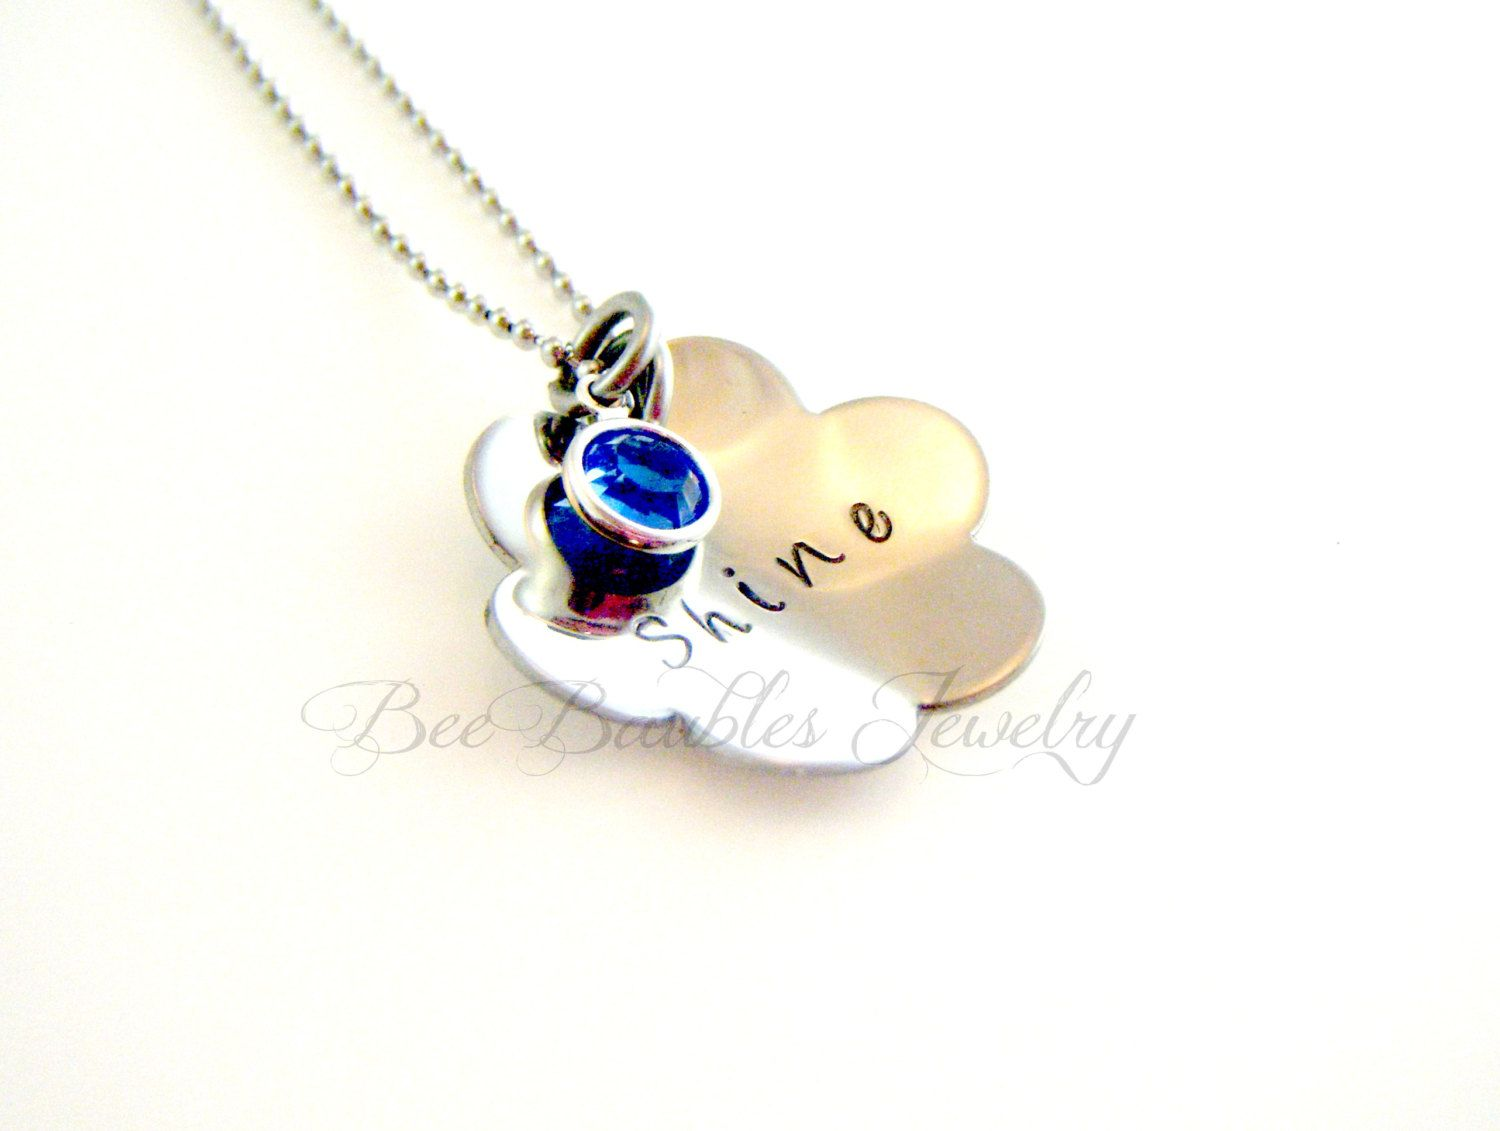 Hand Stamped Personalized Necklace - Mothers Necklace- Mothers Jewelry- Birthstone Necklace. $27.00, via Etsy.